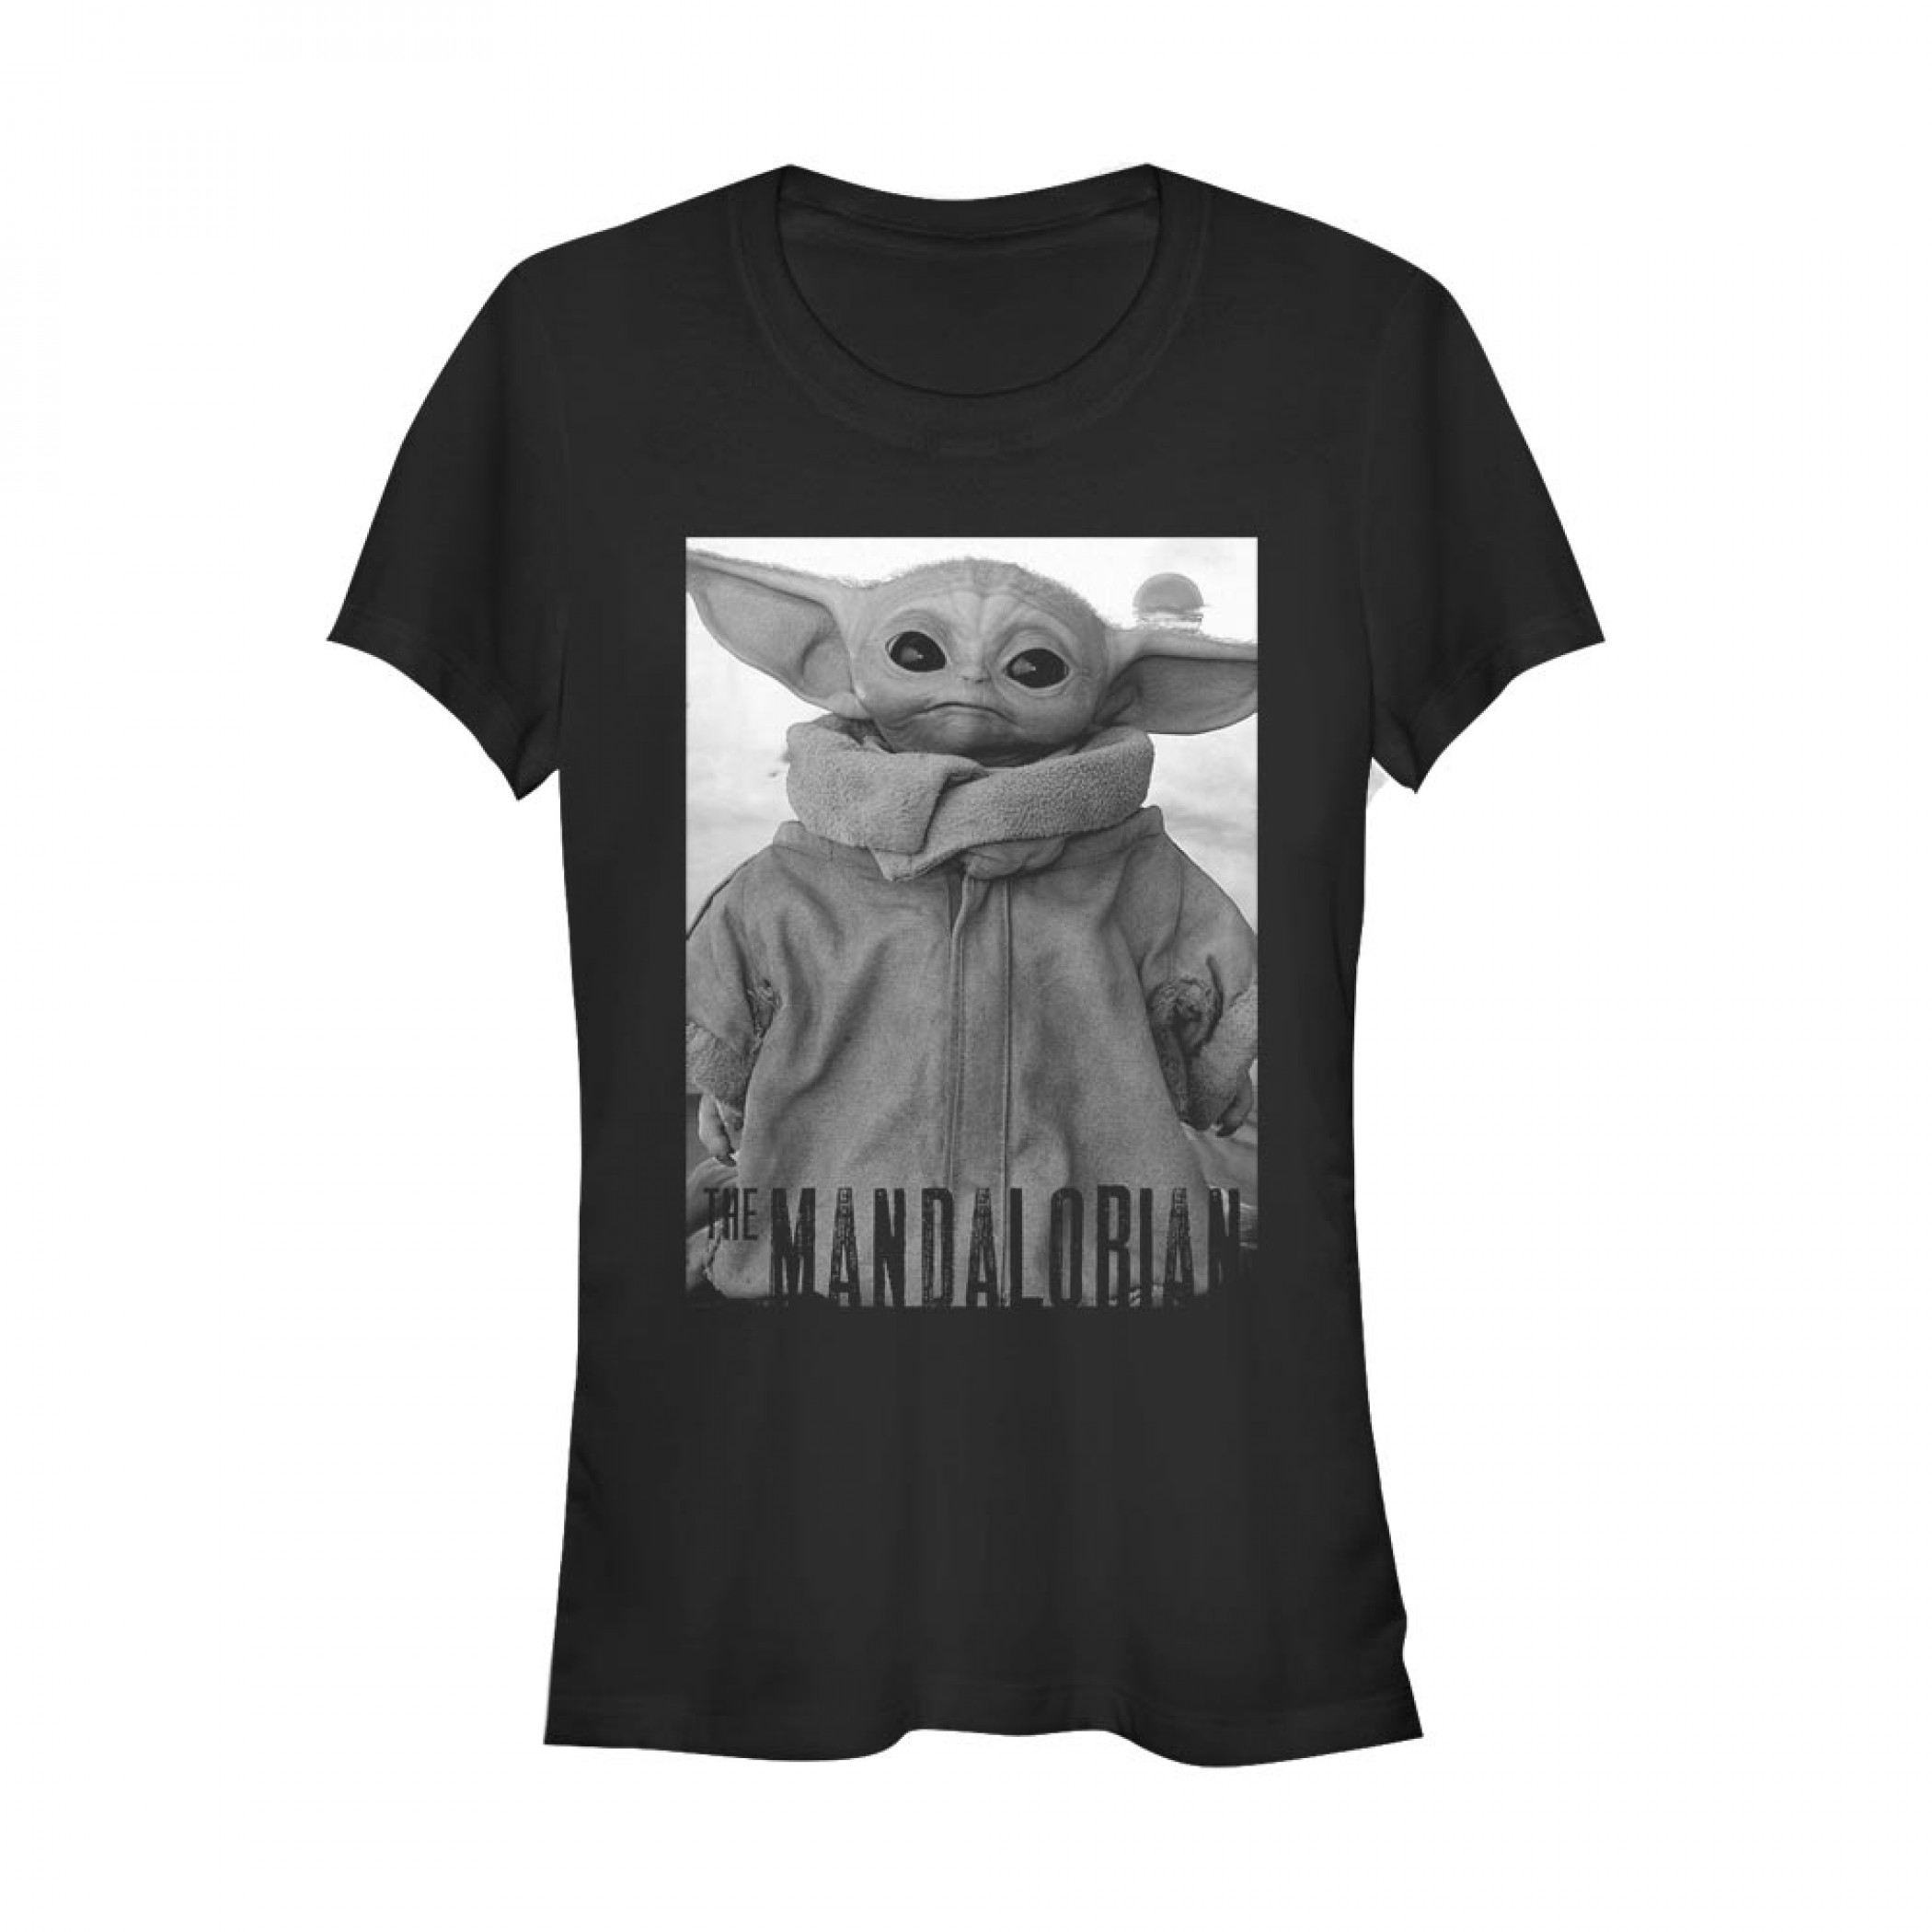 Star Wars The Mandalorian The Child Grayscale Pose Junior's T-Shirt